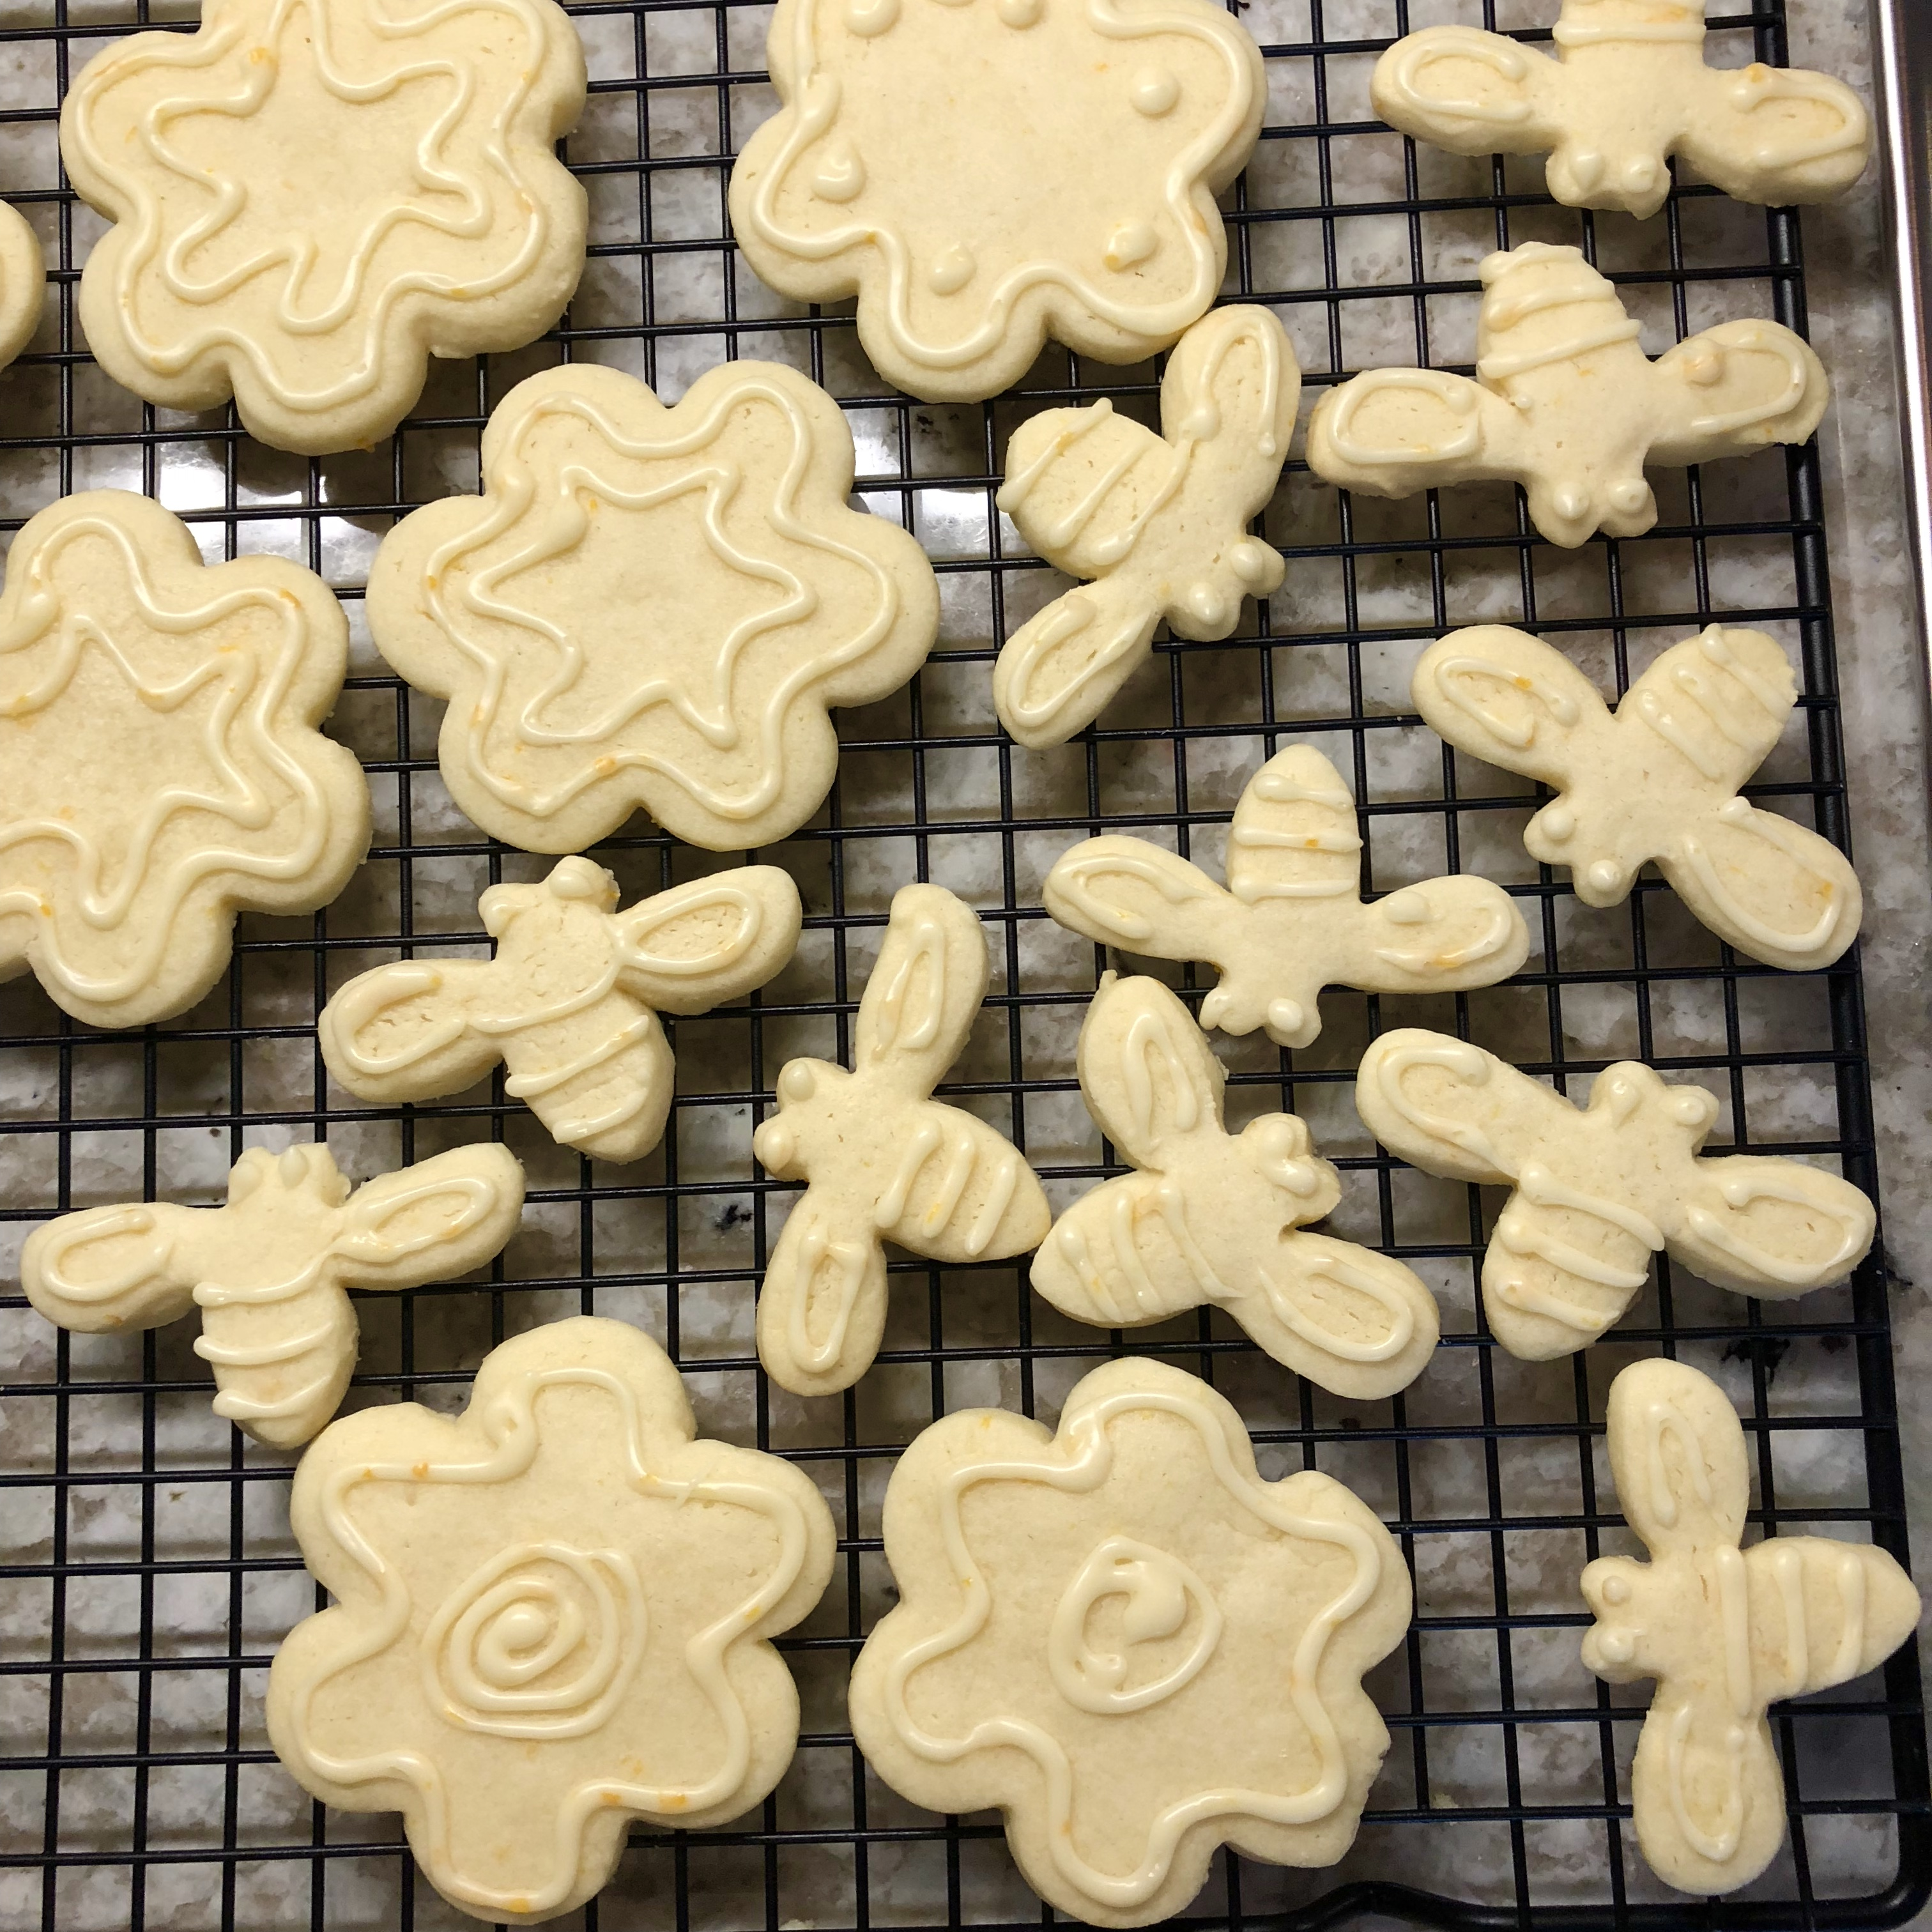 Bee and flower cutout cookies